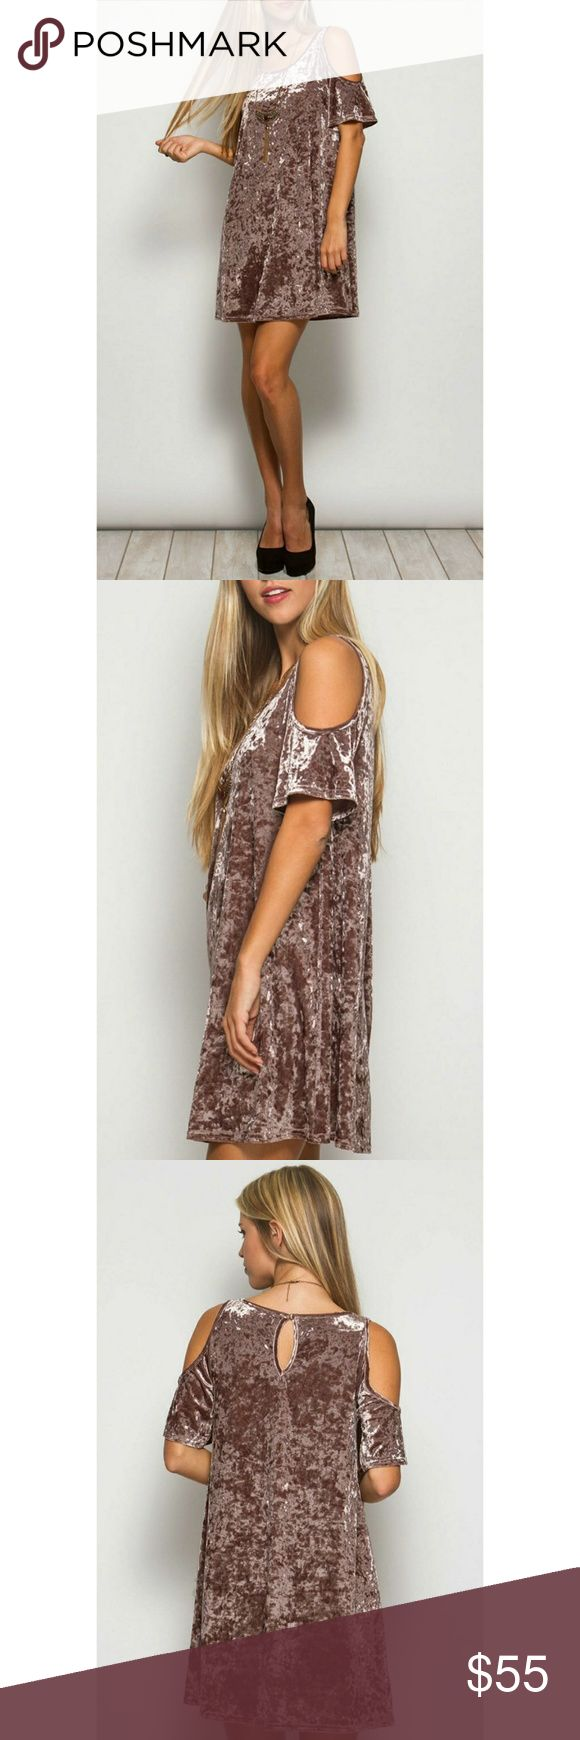 """Velvet Underground Dress This velvet cold shouldered dress is made to stand out! The color is a gorgeous dusty mauve. Keyhole back with button closure.  60% cotton, 40% rayon.  Bust: 16"""" Length from shoulder: 33""""  Price is firm unless bundled. She and Sky Dresses Mini"""